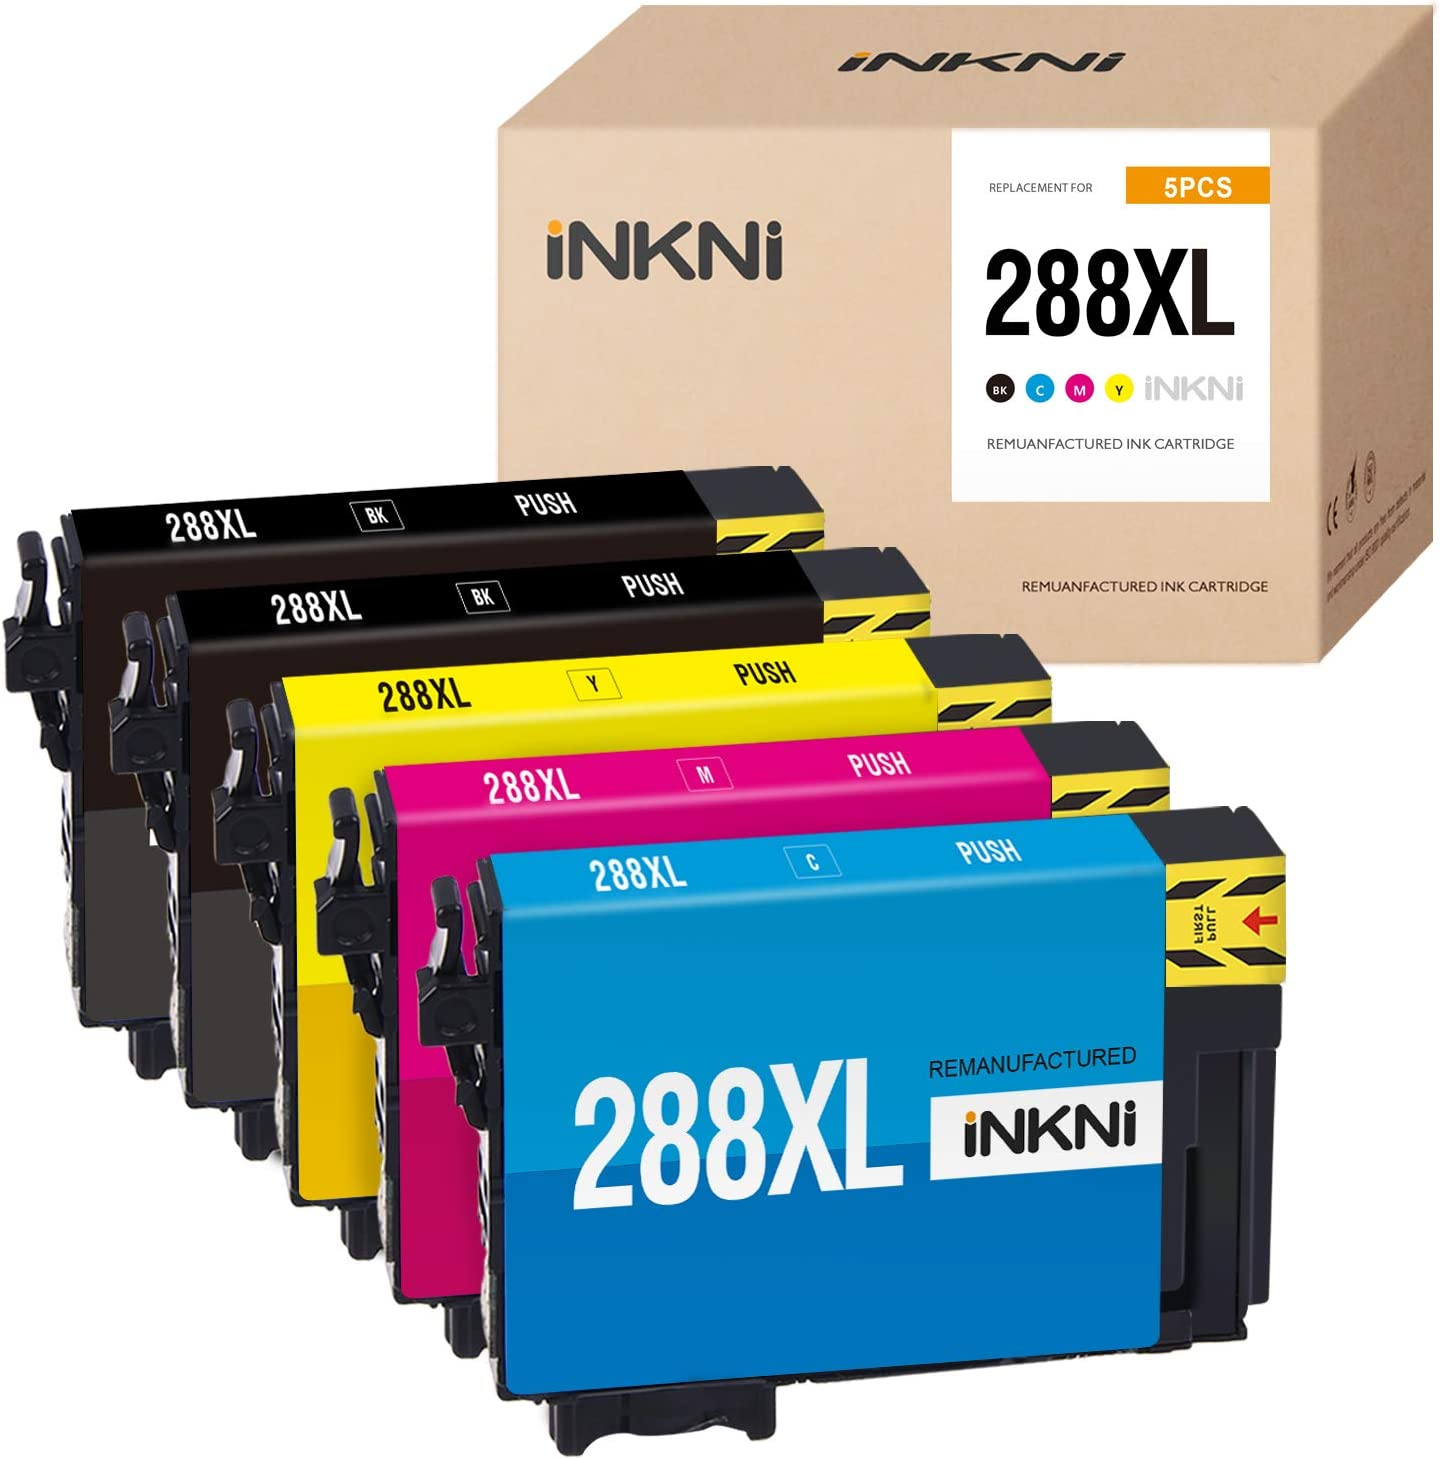 INKNI Remanufactured Ink Cartridge Replacement for Epson 288XL 288 XL T288XL High Capacity Ink for Expression Home XP-440 XP-340 XP-330 XP-430 XP-446 XP-434( 2 Black, 1 Cyan Magenta Yellow, 5-Pack)